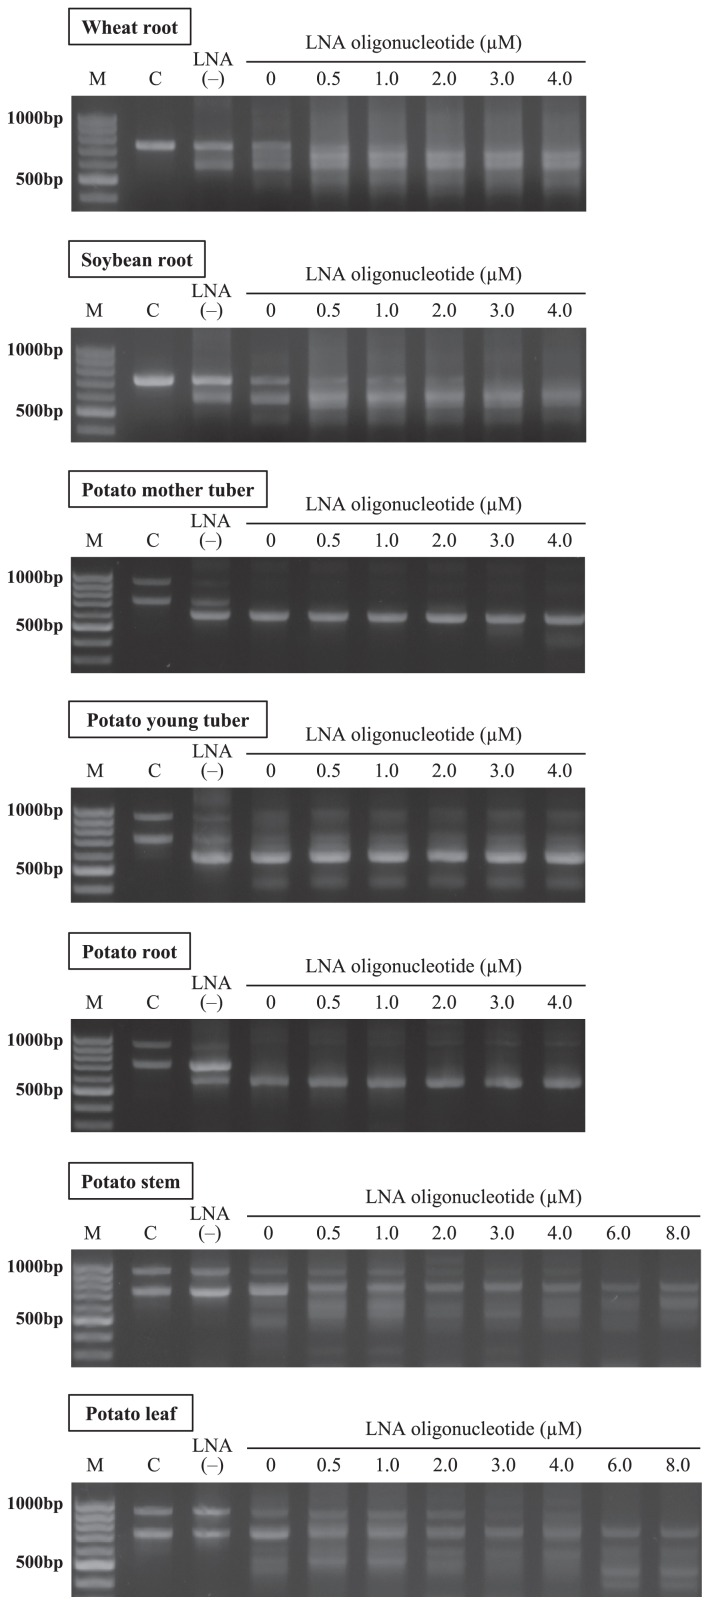 """Estimation of effective concentrations for LNA oligonucleotides. LNA oligonucleotides were used in the ranges of 0 μM, 0.5 μM, 1.0 μM, 2.0 μM, 3.0 μM, and 4.0 μM. Higher concentrations of 6.0 μM and 8.0 μM were also examined for potato leaf and stem samples. """"M"""" is the marker for 100-bp ladders, and """"C"""" is aseptic amplicons to provide the position of host plant DNA in the agarose gel. """"LNA(−)"""" represents amplicons prepared with the ITS1F DNA primer and ITS4 primer."""